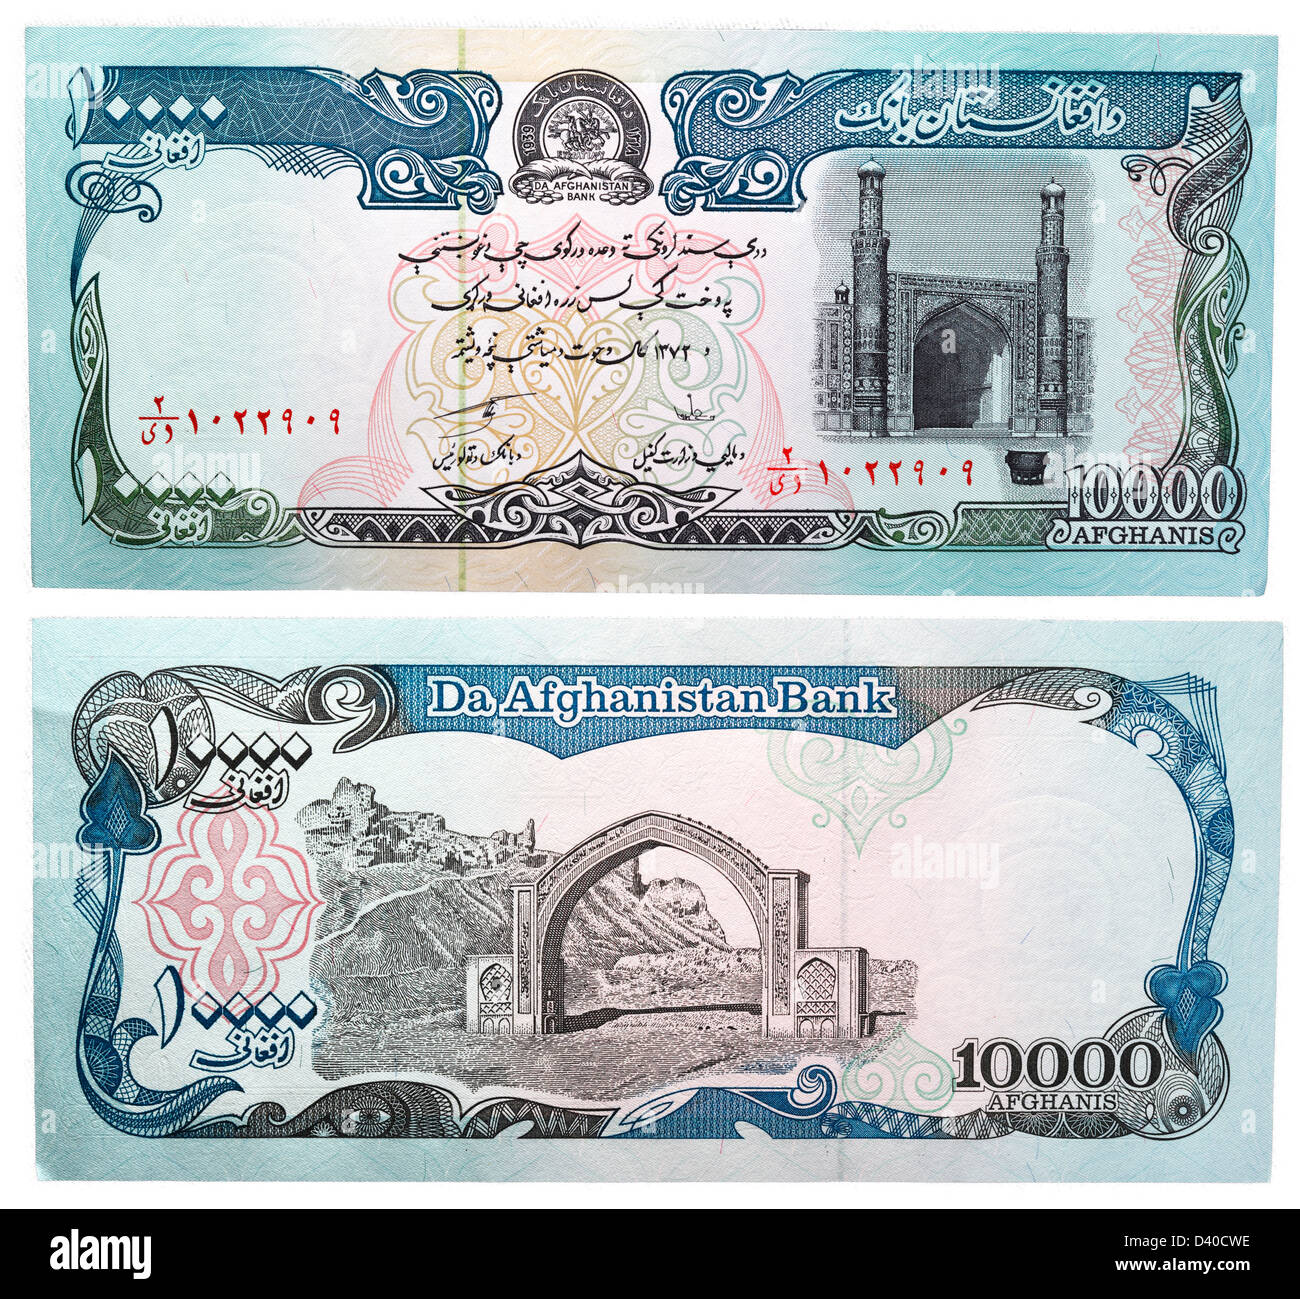 10000 Afghanis banknote (Arched gateway at Bost), Afghanistan, 1993 - Stock Image